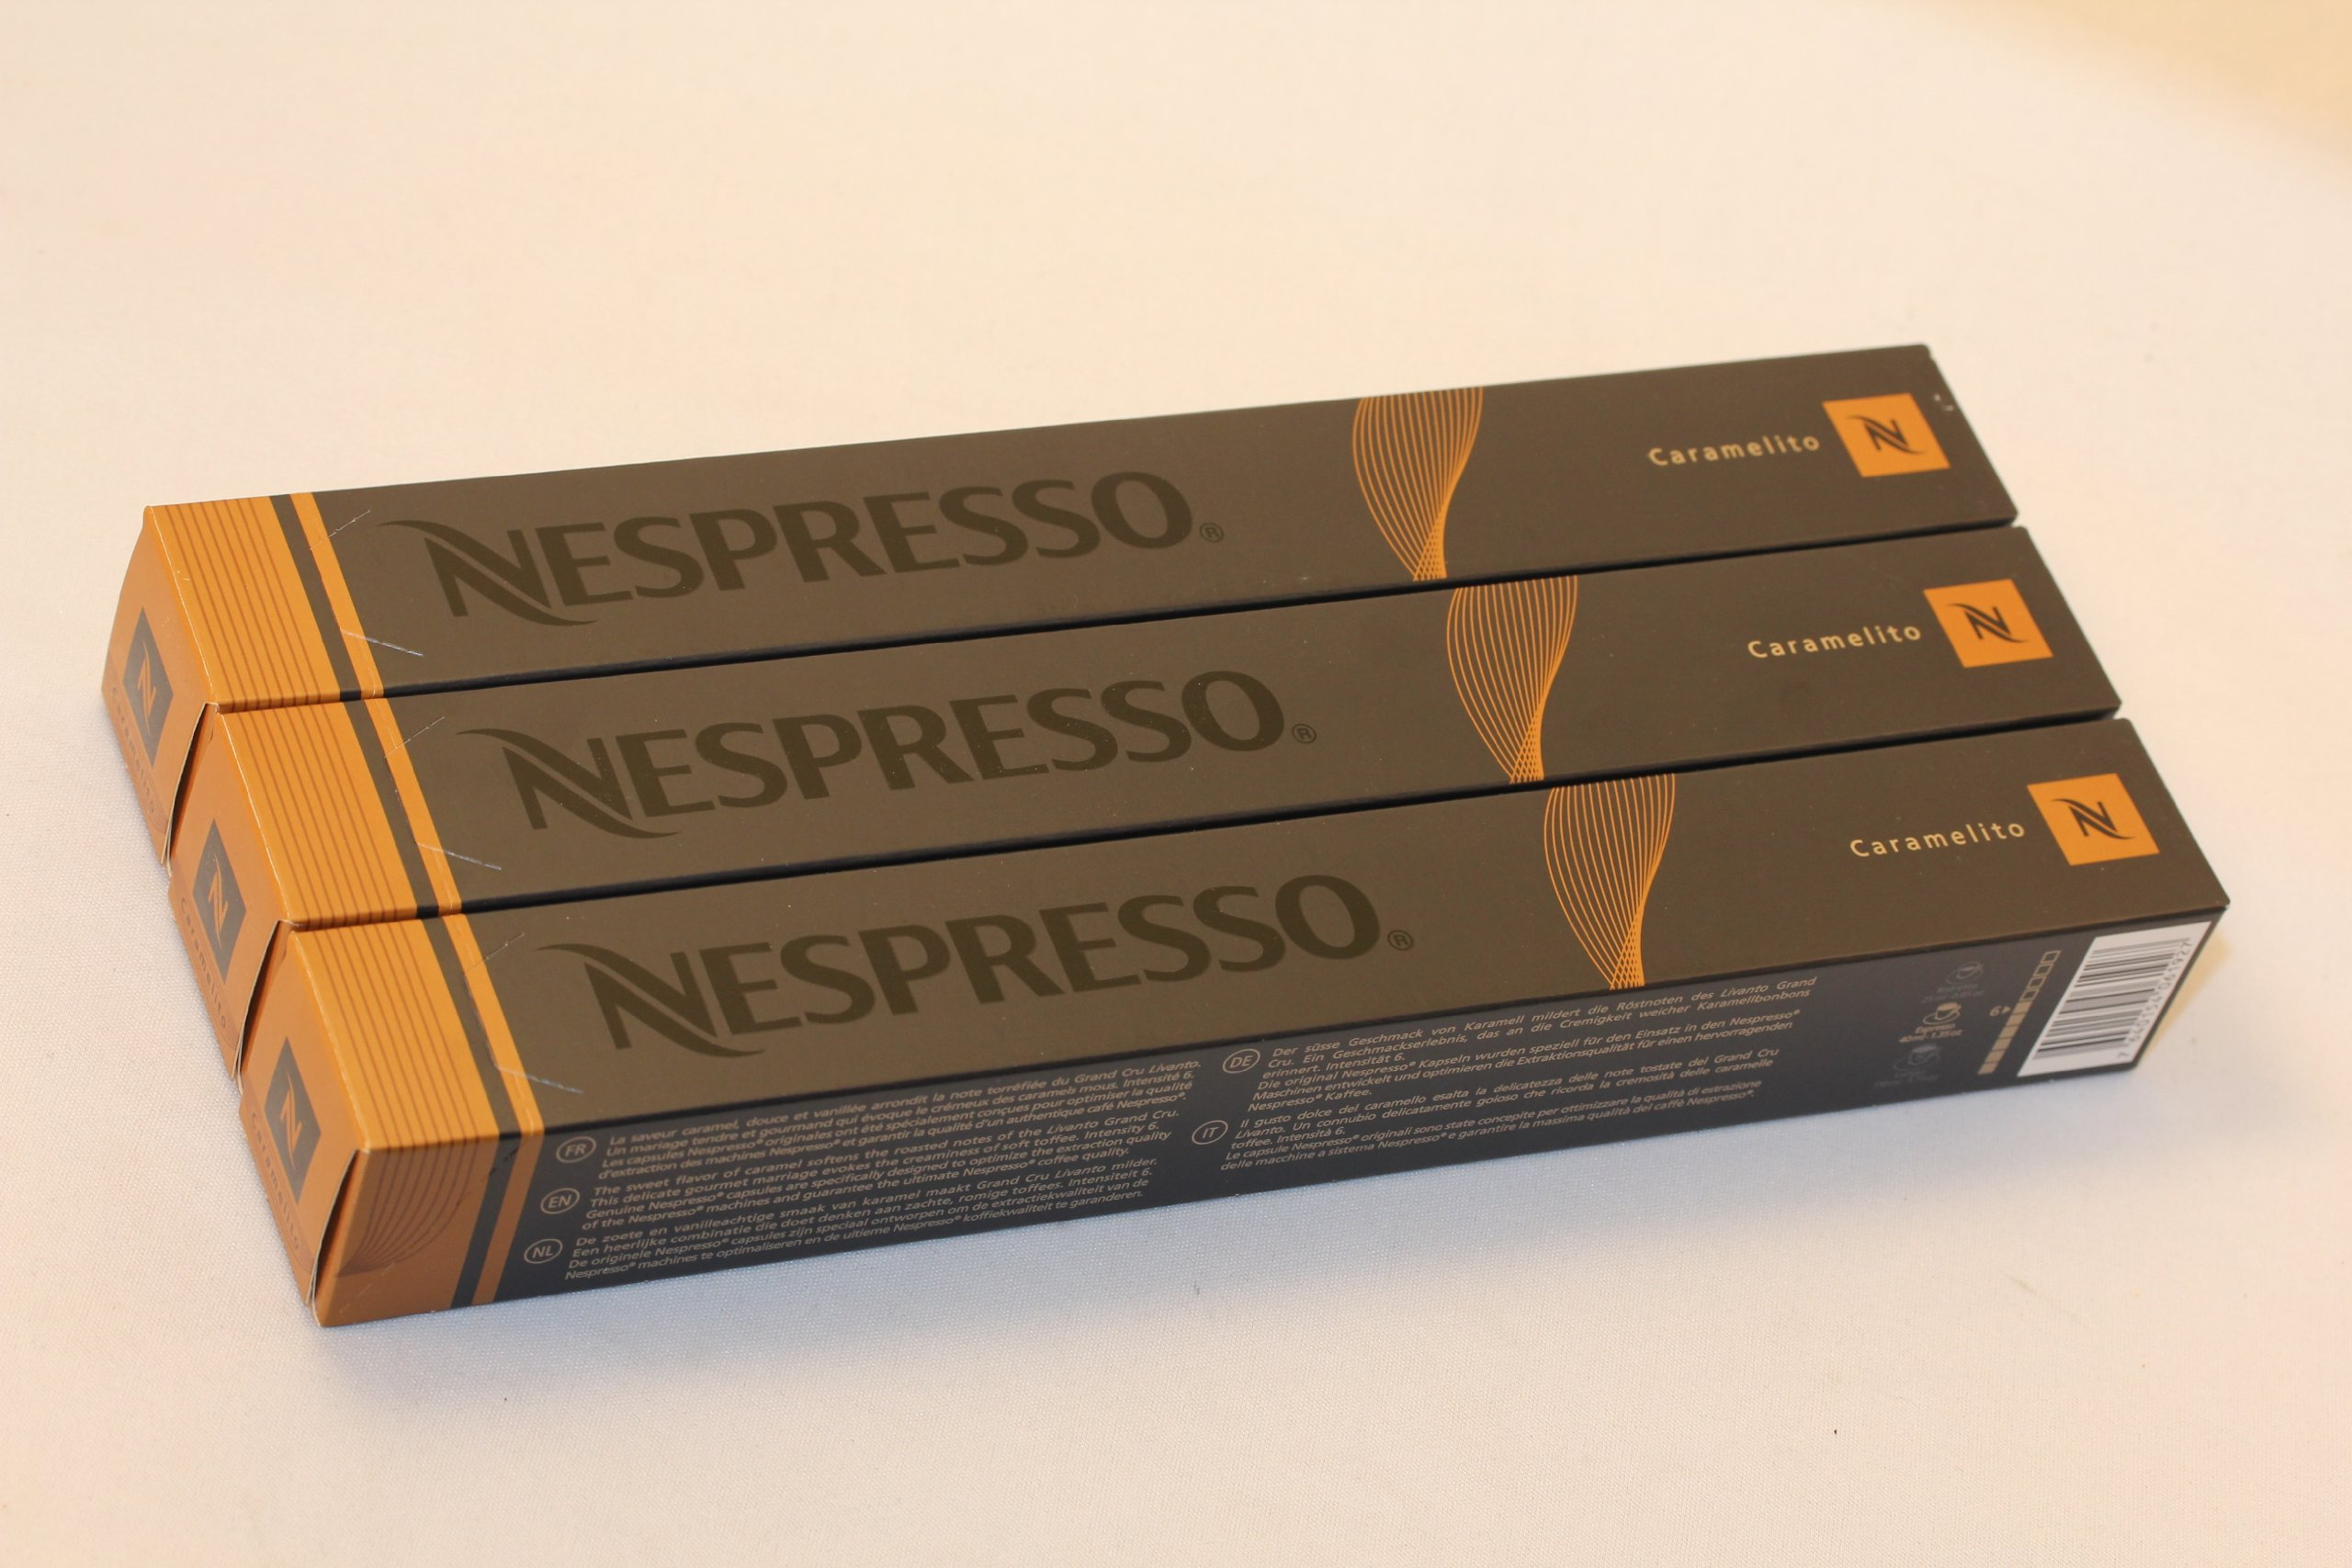 Nespresso Original Variations coffee pods and capsules (a caramel notes, cereal, fruit notes, malty notes coffee with aromas of caramel and roasted, fresh fruit and petals, nutty, spices and tobacco)